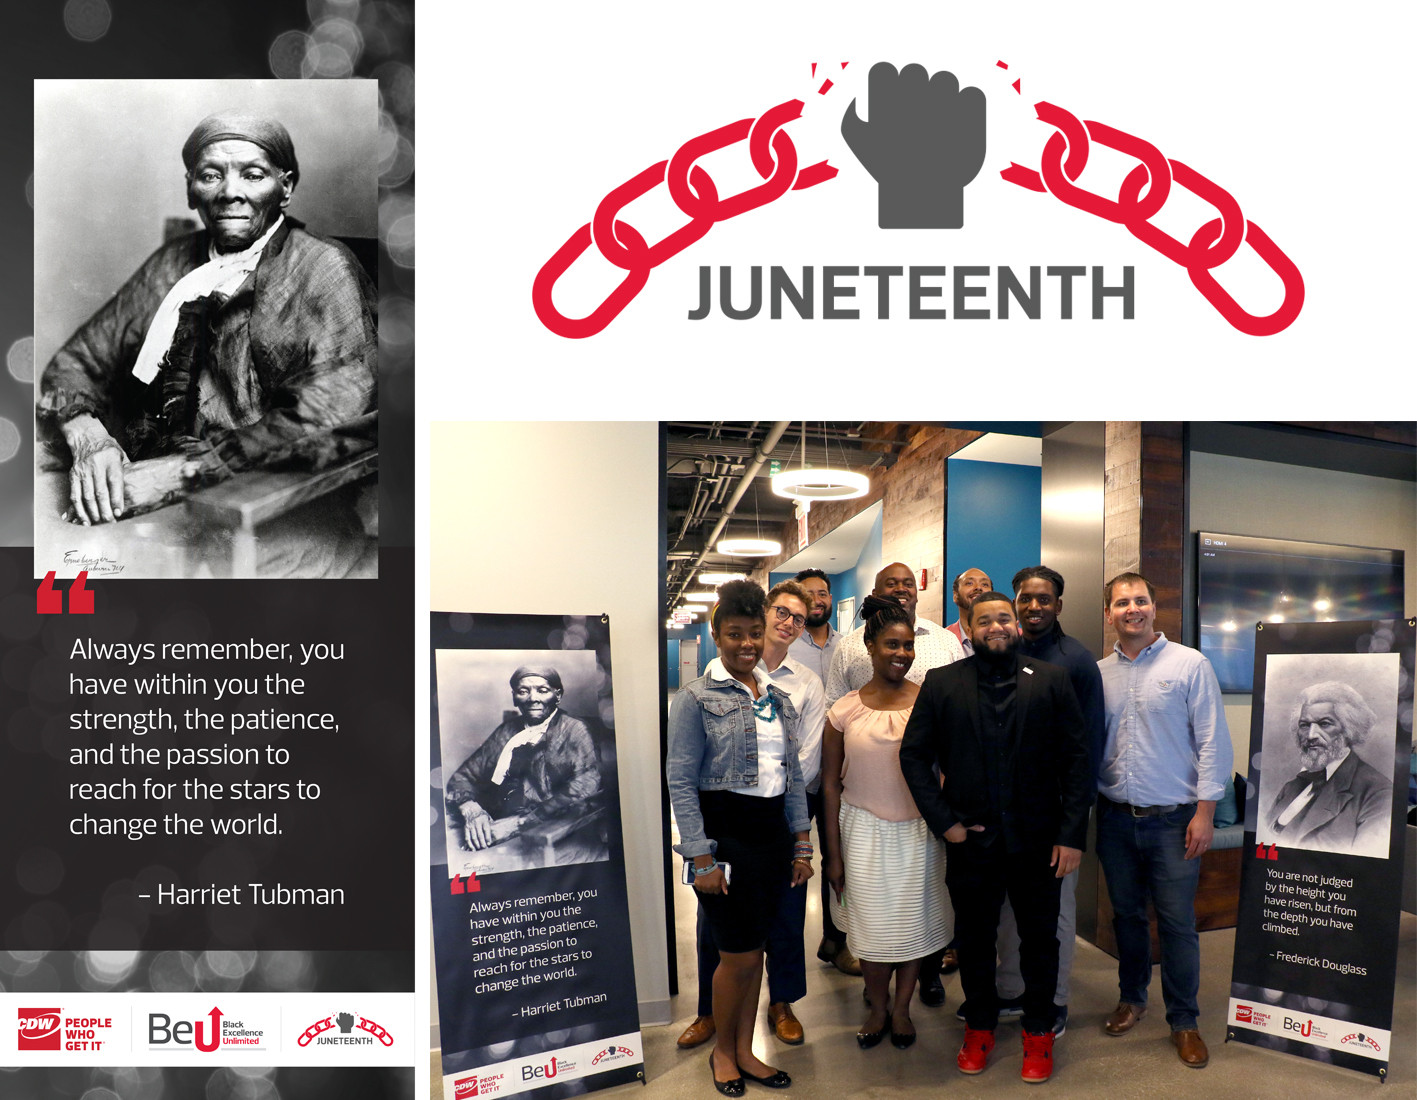 Juneteenth Graphics, Banner, Event Photo